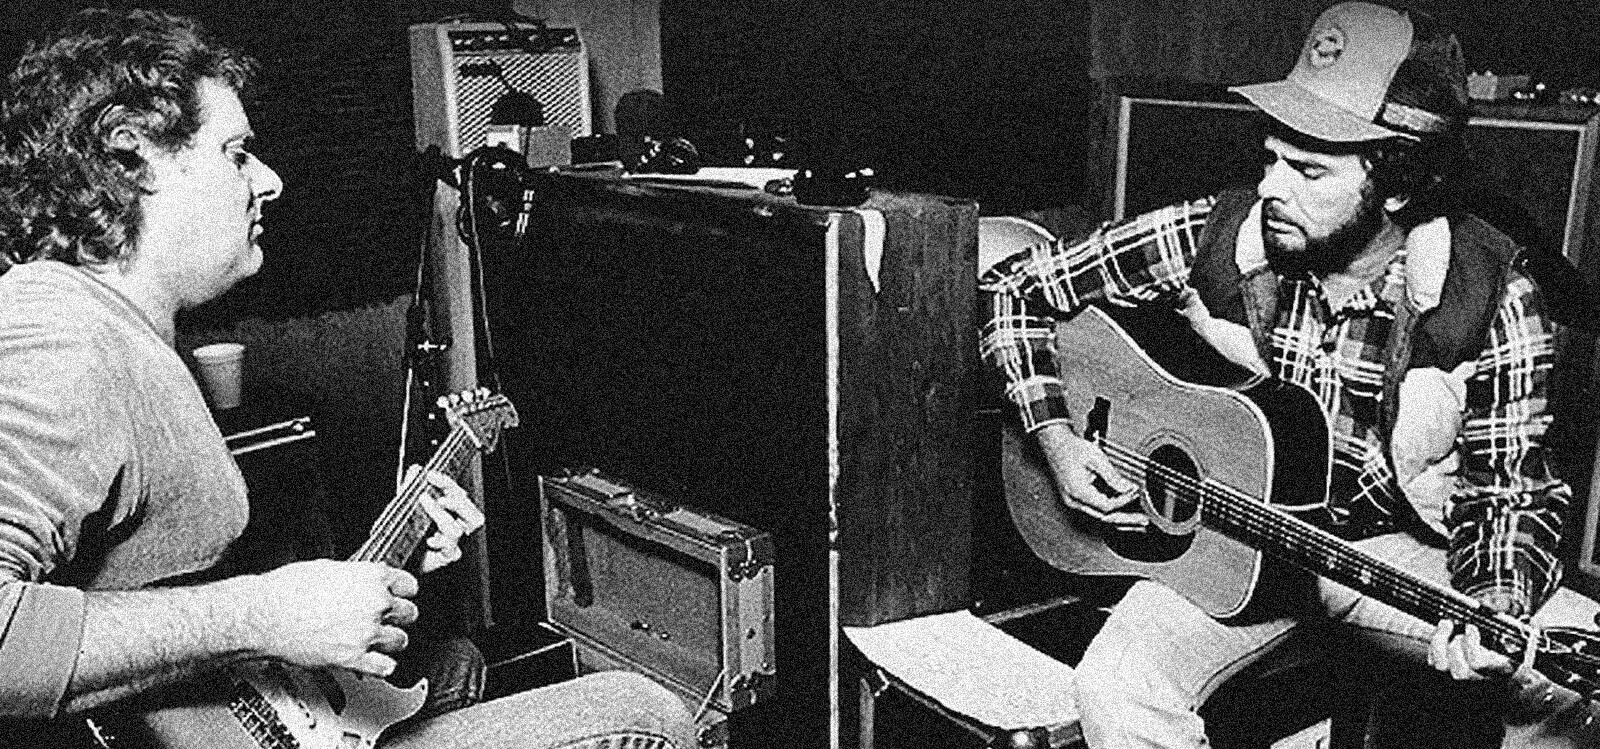 Reggie Young and Merle Haggard play guitar